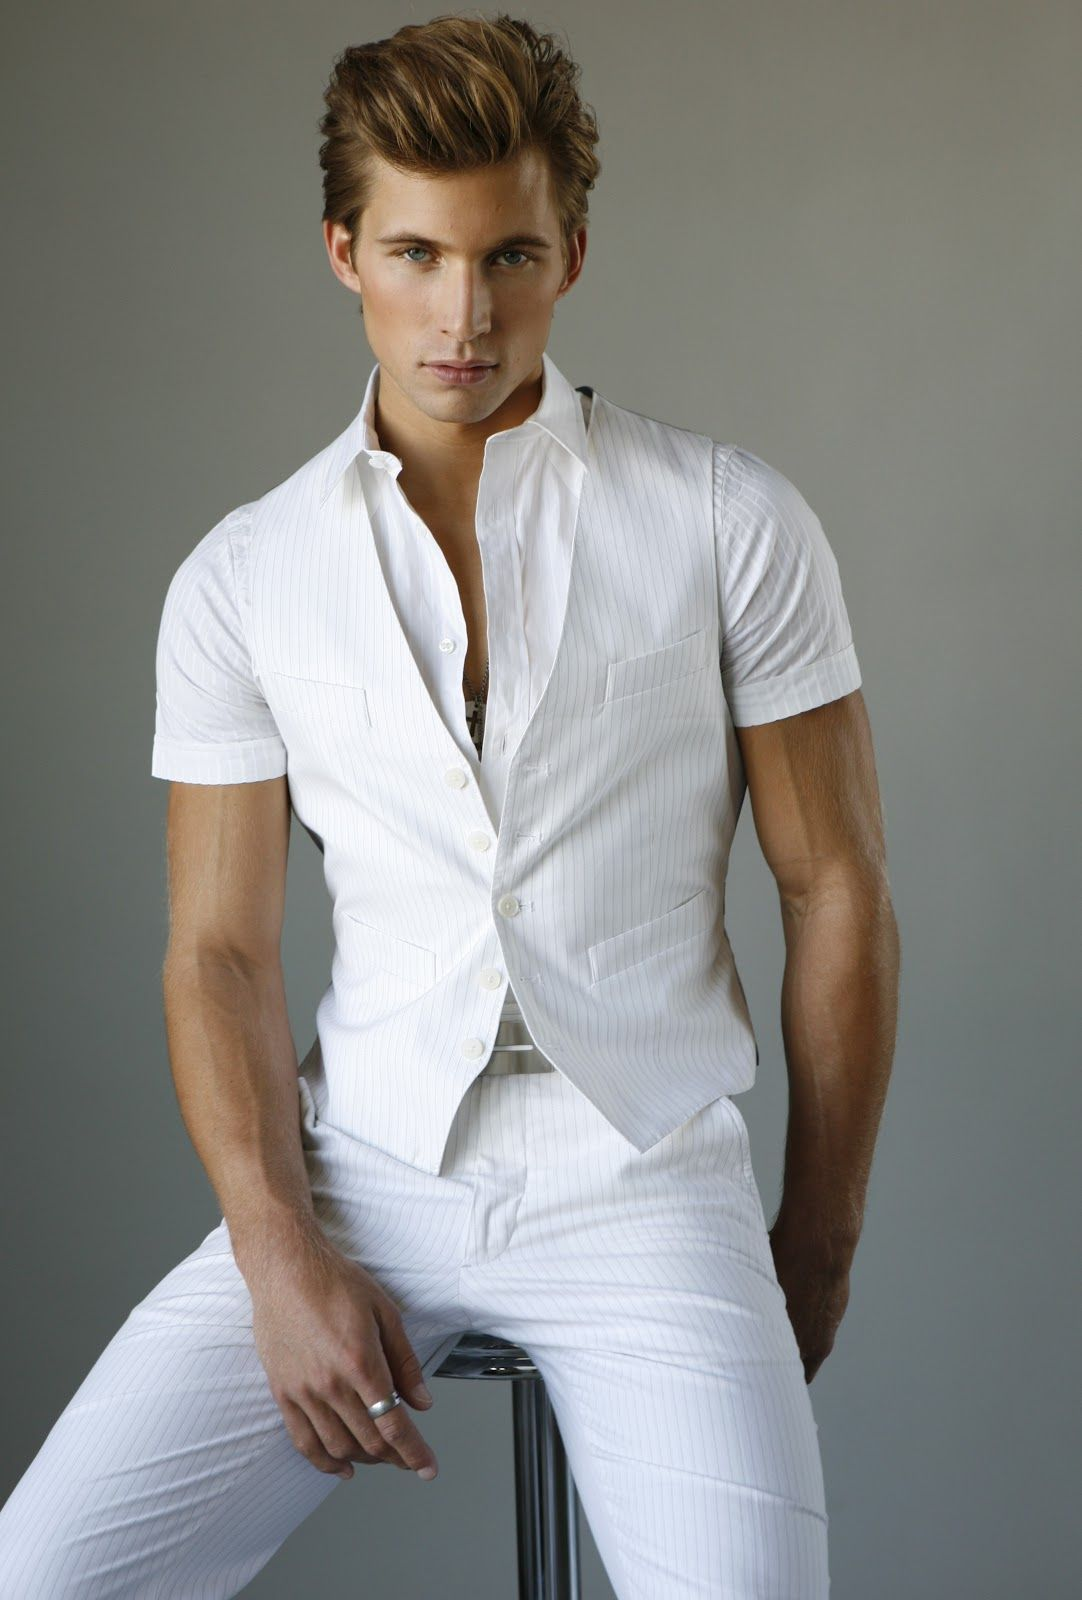 All in white justin deeley looks pinterest men 39 s for White shirt outfit mens